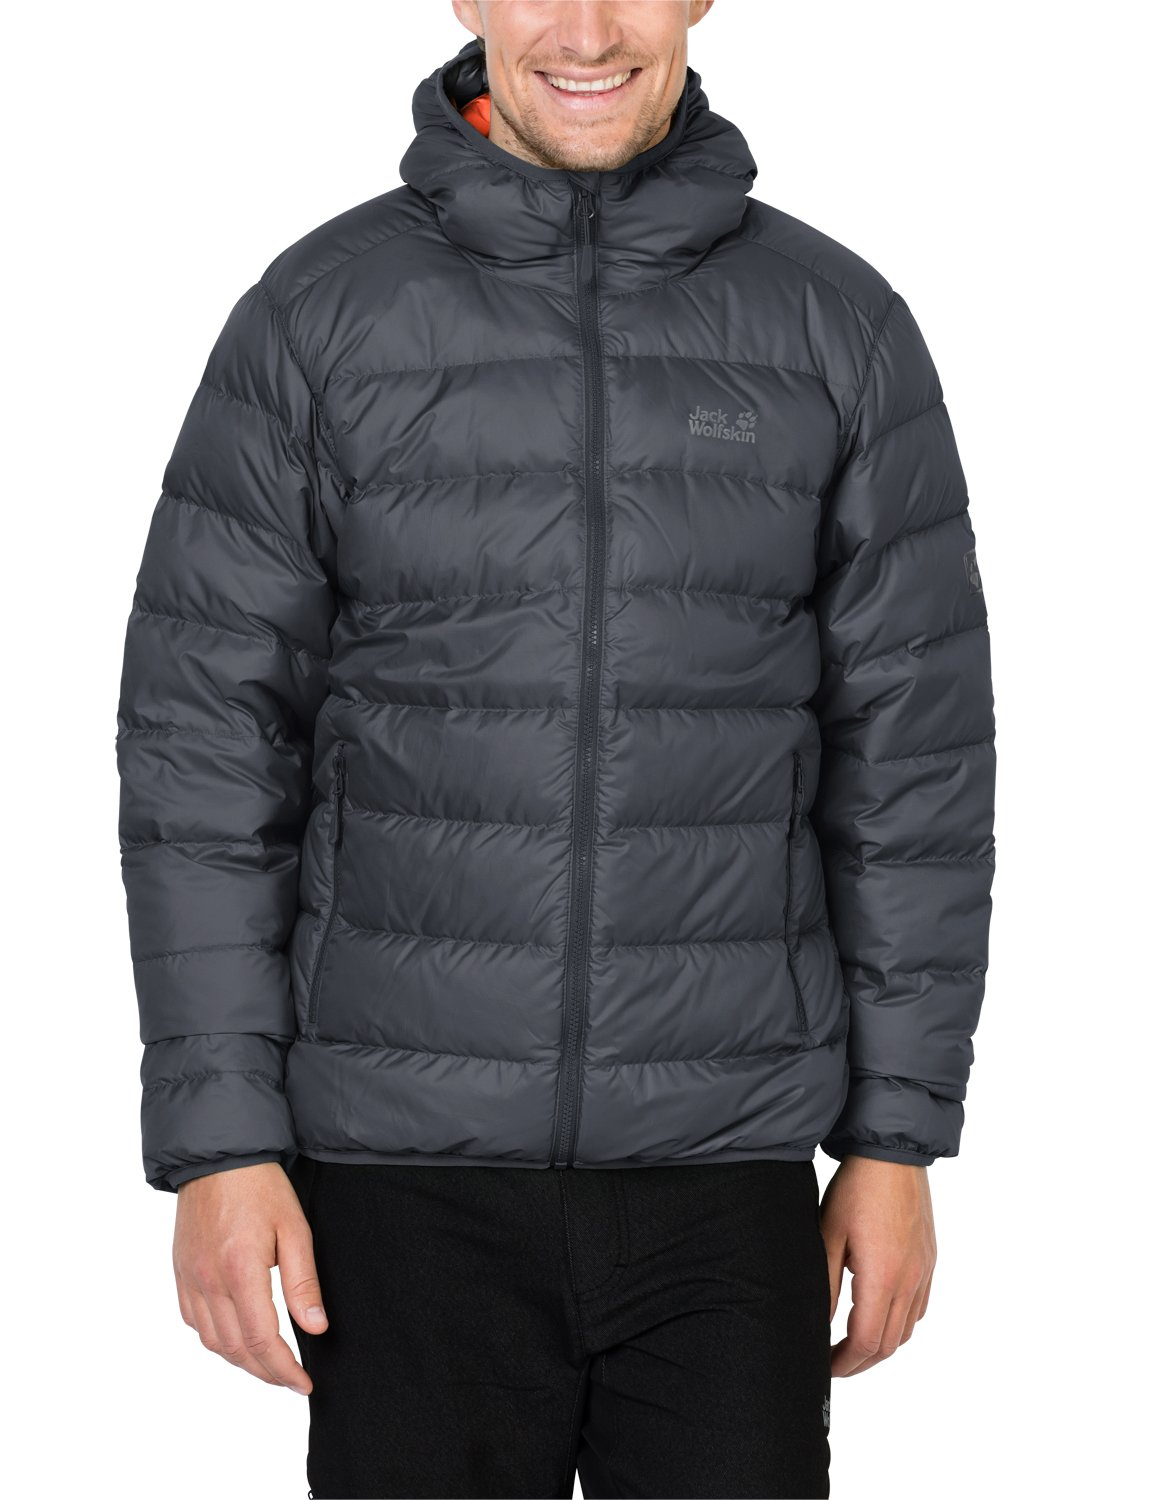 Jack Wolfskin Helium Men's Down Jacket, Men, Helium: Amazon.co.uk: Sports &  Outdoors